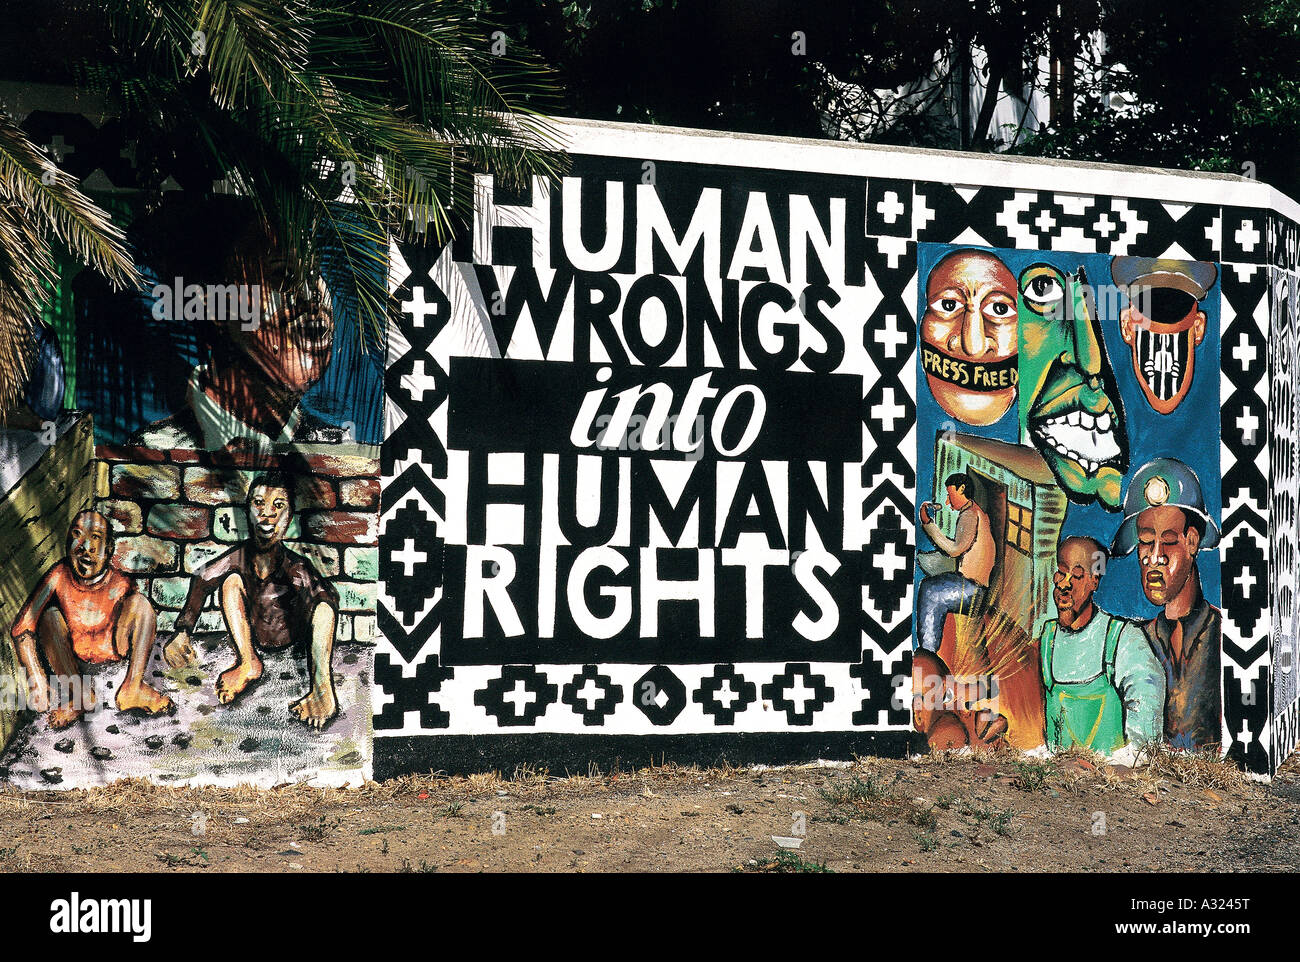 Human Wrongs into Human Rights, Wall Mural, Cape Town, South Africa - Stock Image